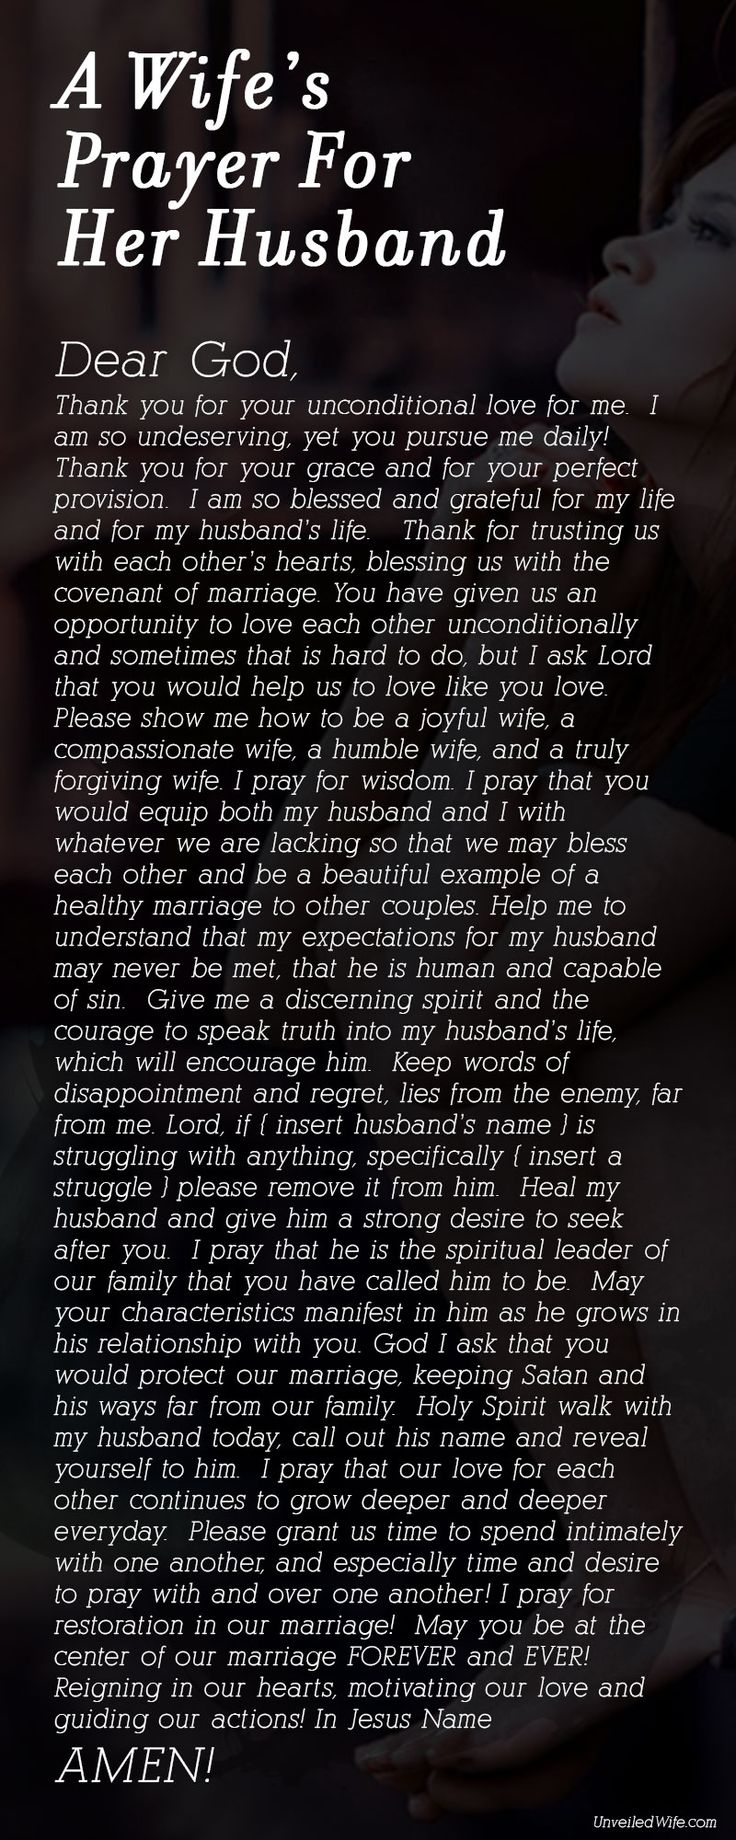 A Wife's Prayer For Her Husband --- God, Thank you for your unconditional love for me. I am so undeserving, yet you pursue me daily! Thank you for your grace and mercy ♥ #marriage #love